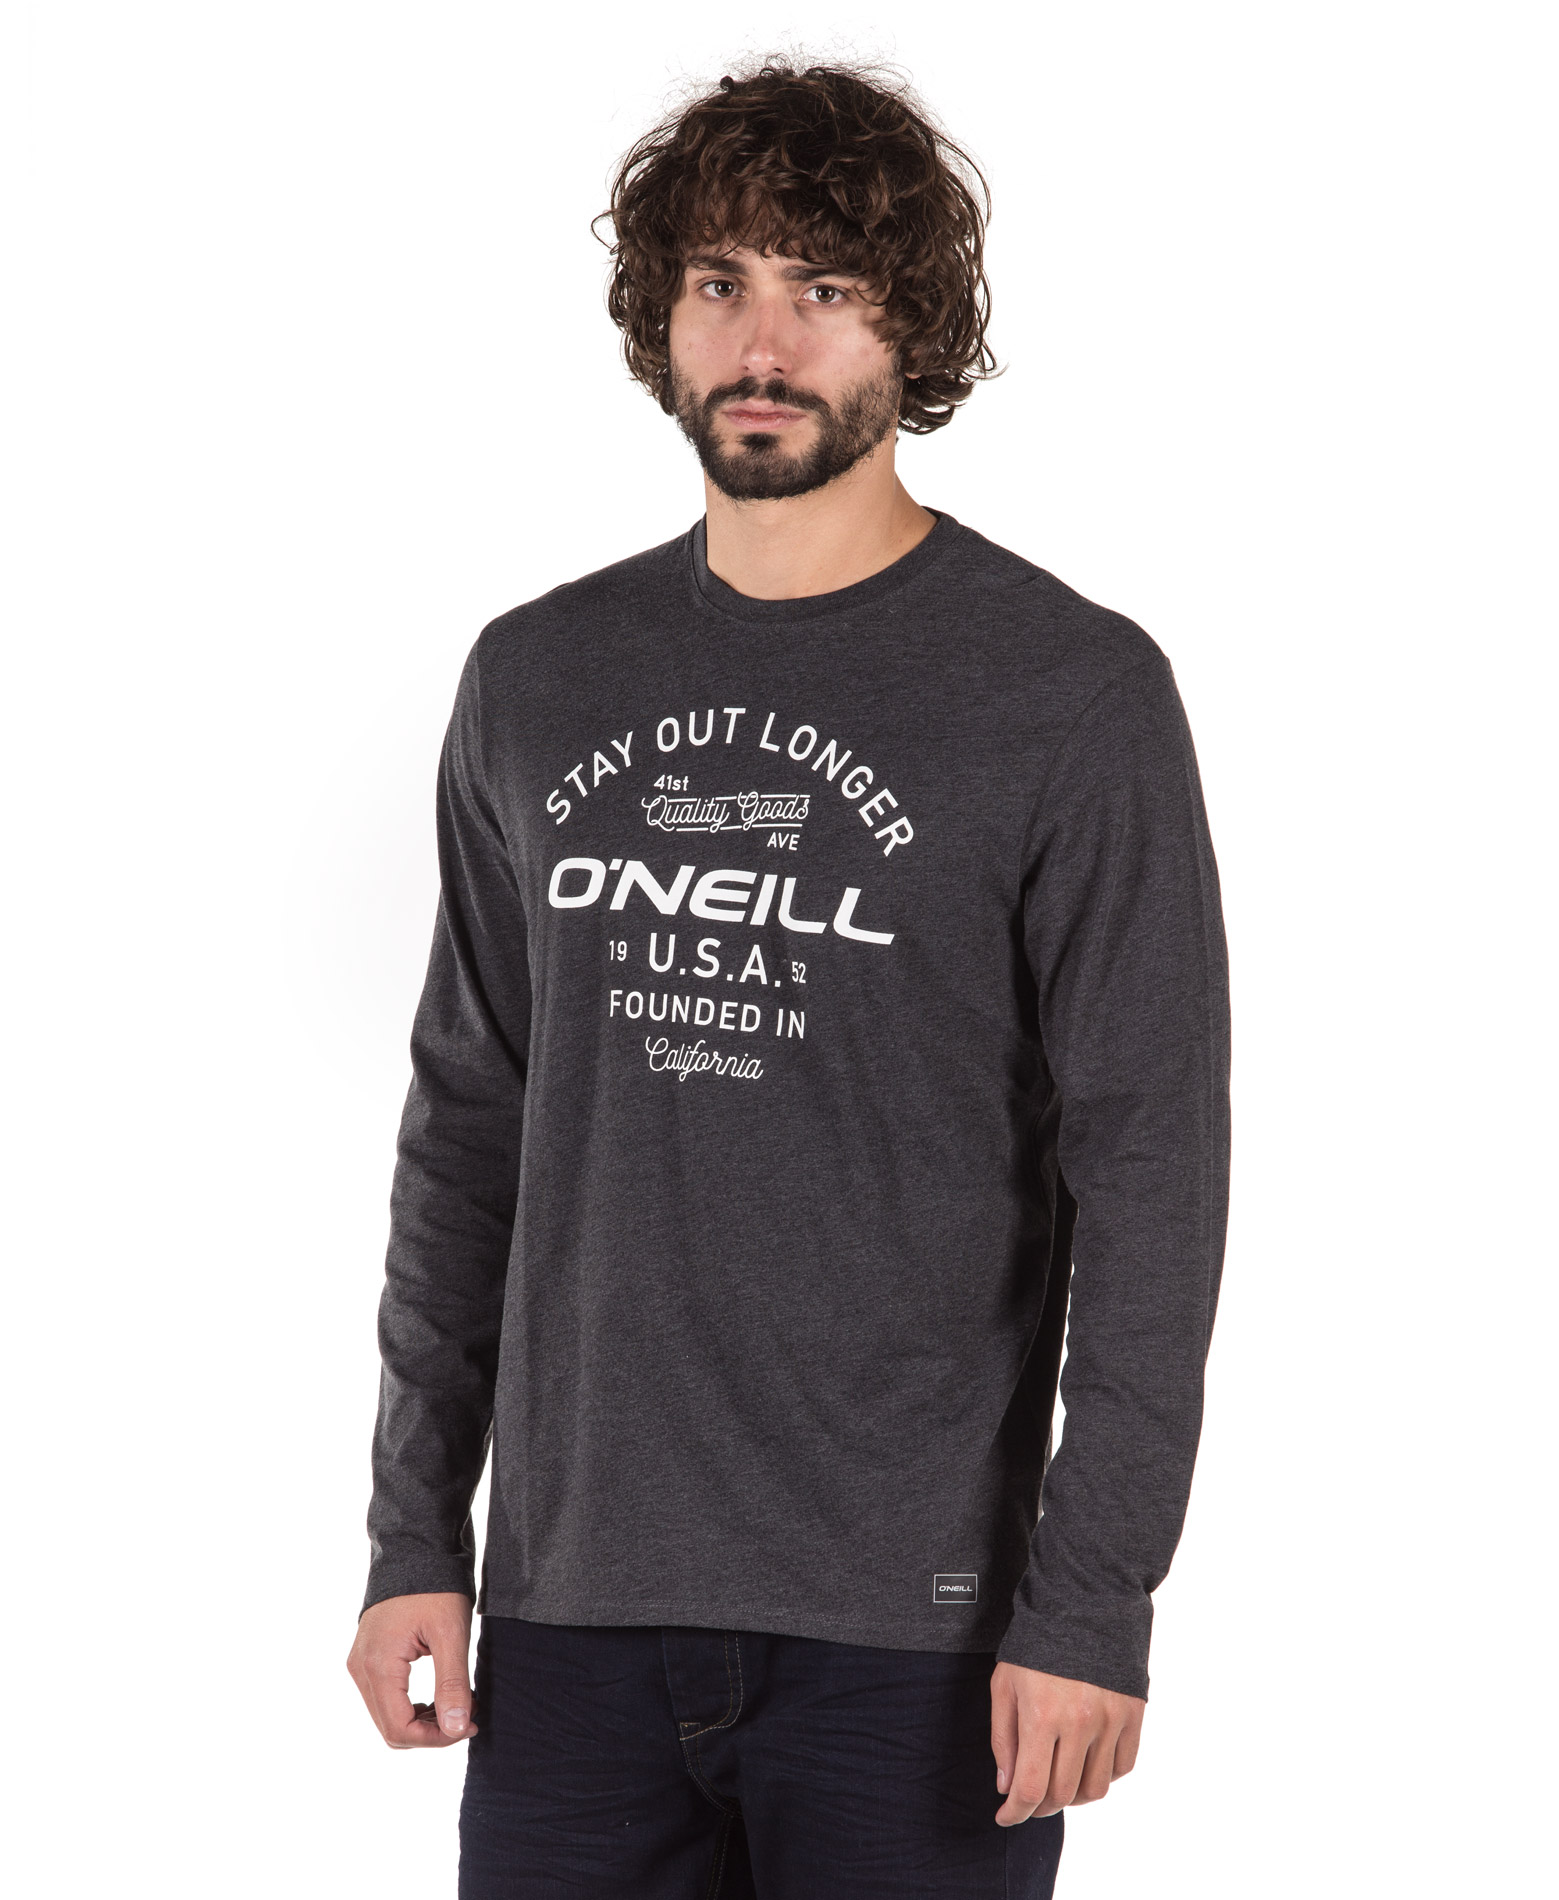 O'NEILL LM STAY OUT L/SLV T-SHIRT 8P2108-8029 Ανθρακί